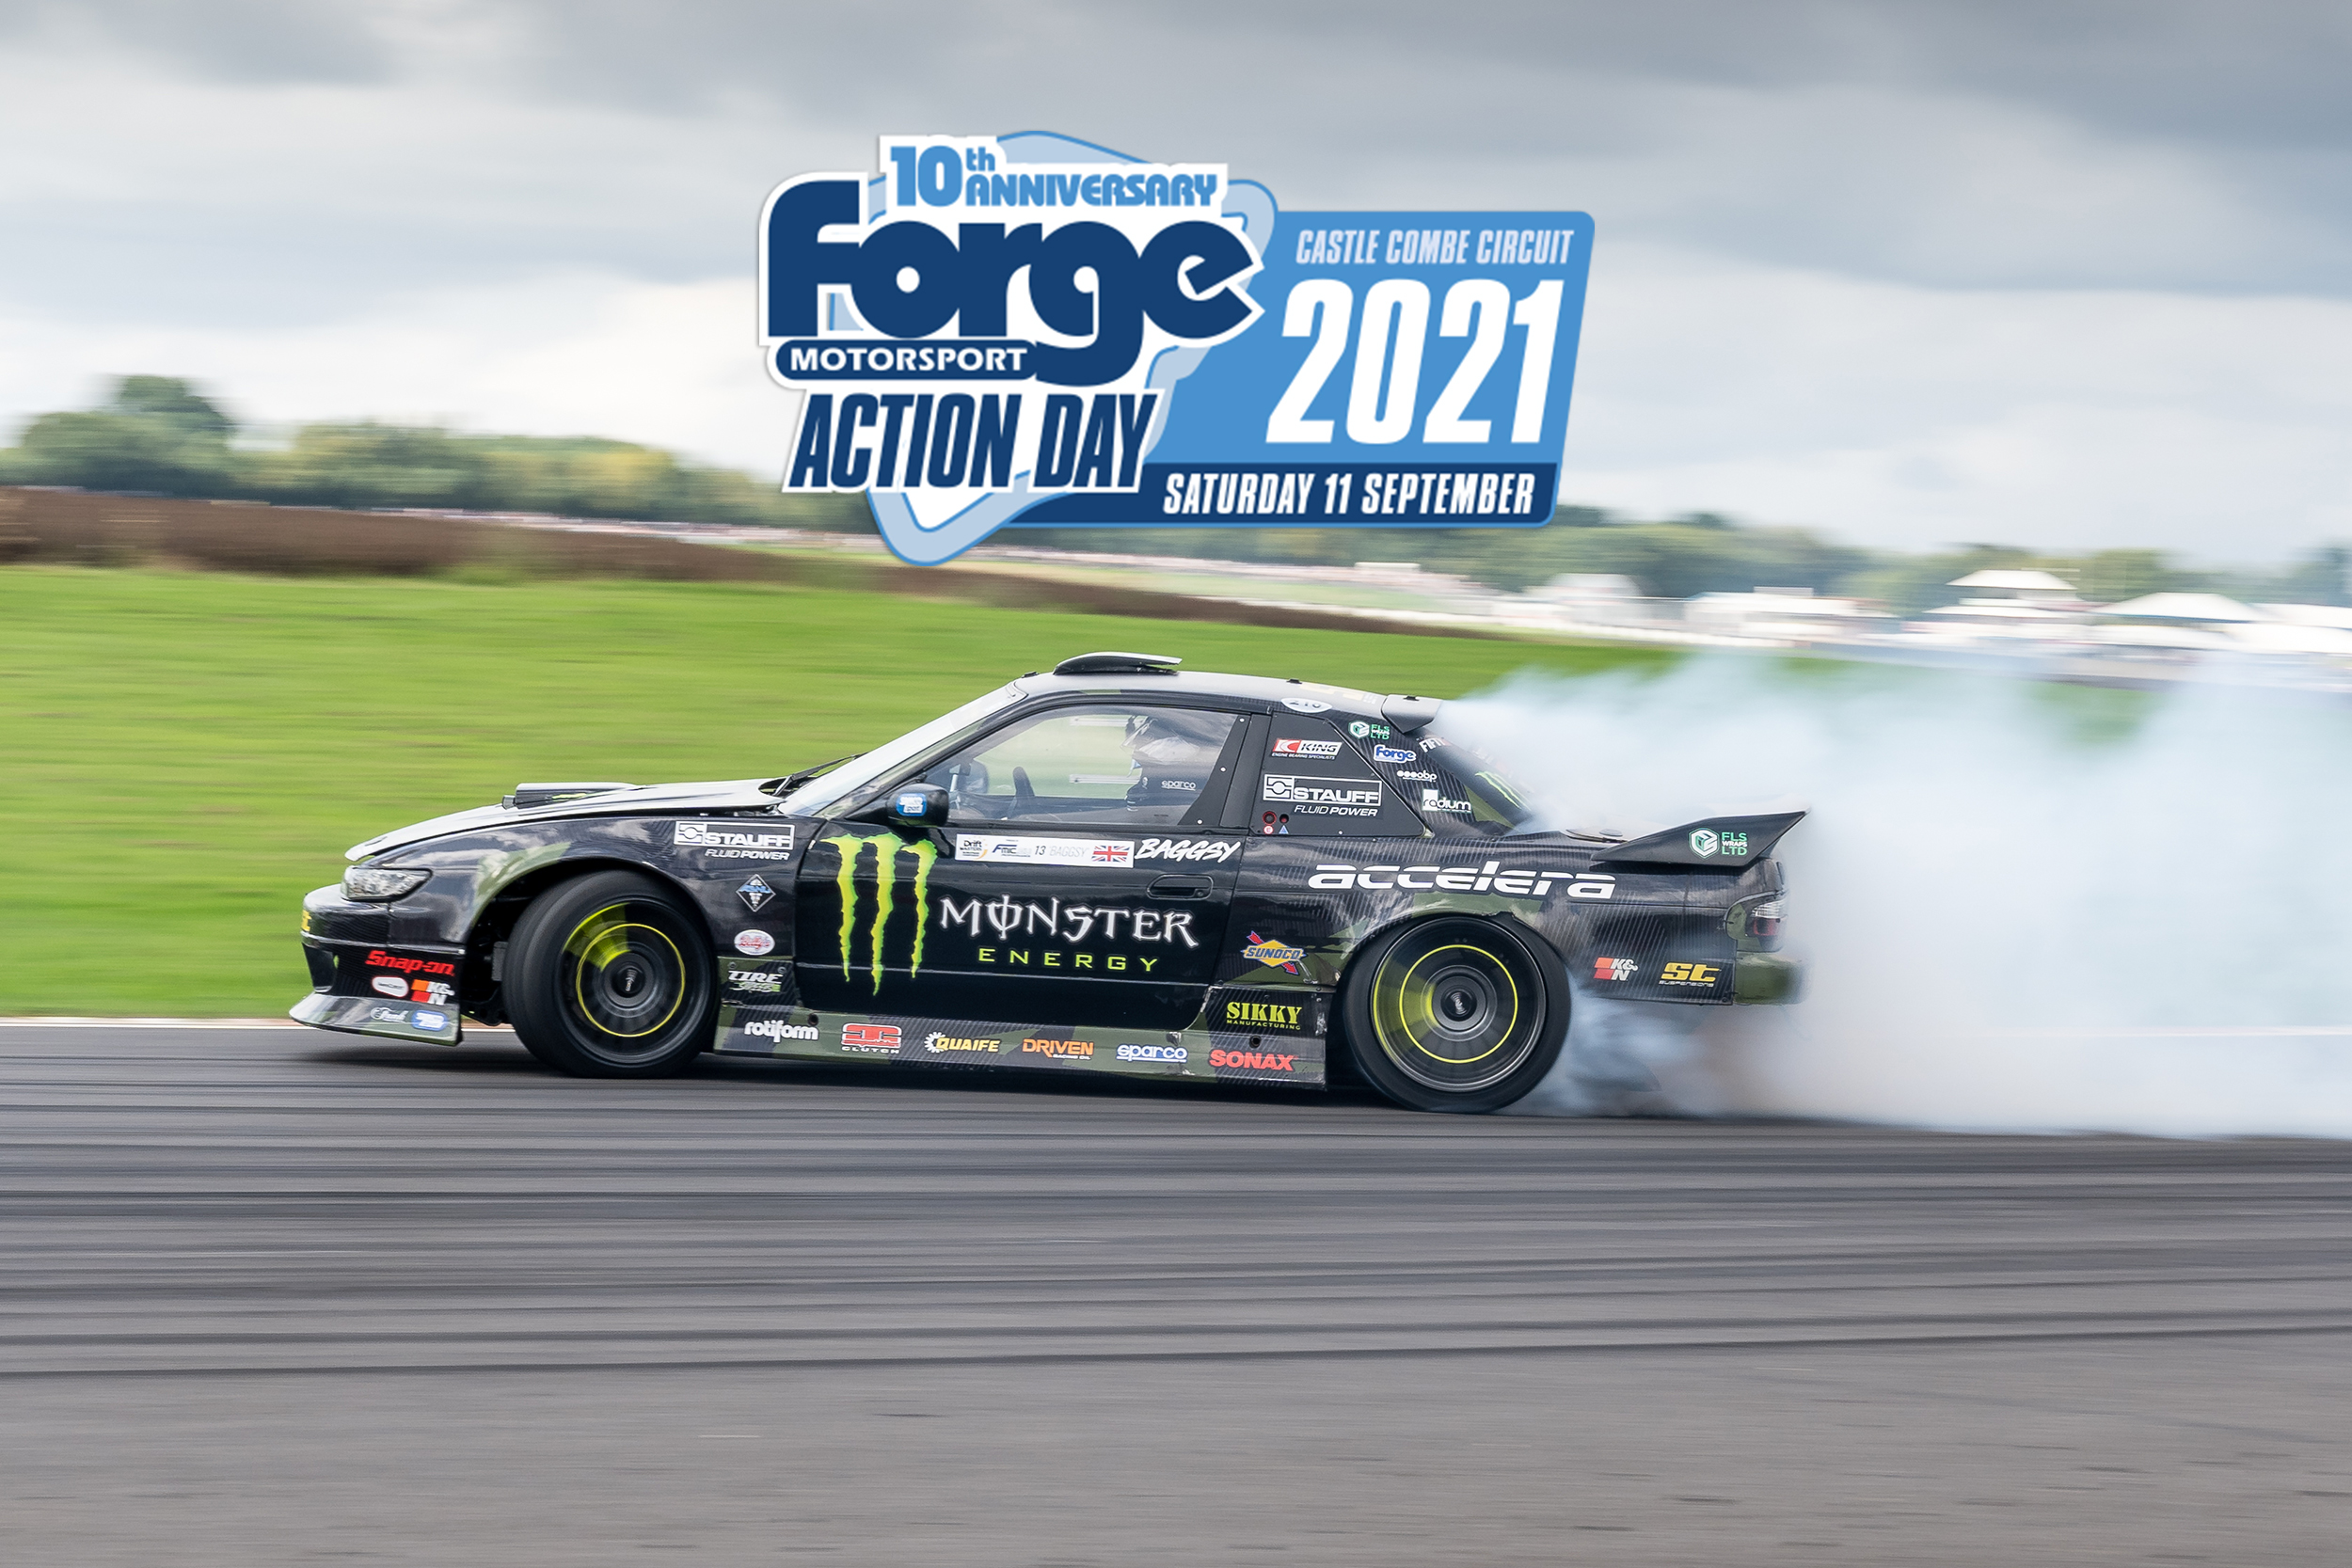 SUN, SIGHTS AND TYRE SMOKE AT FORGE ACTION DAY 2021